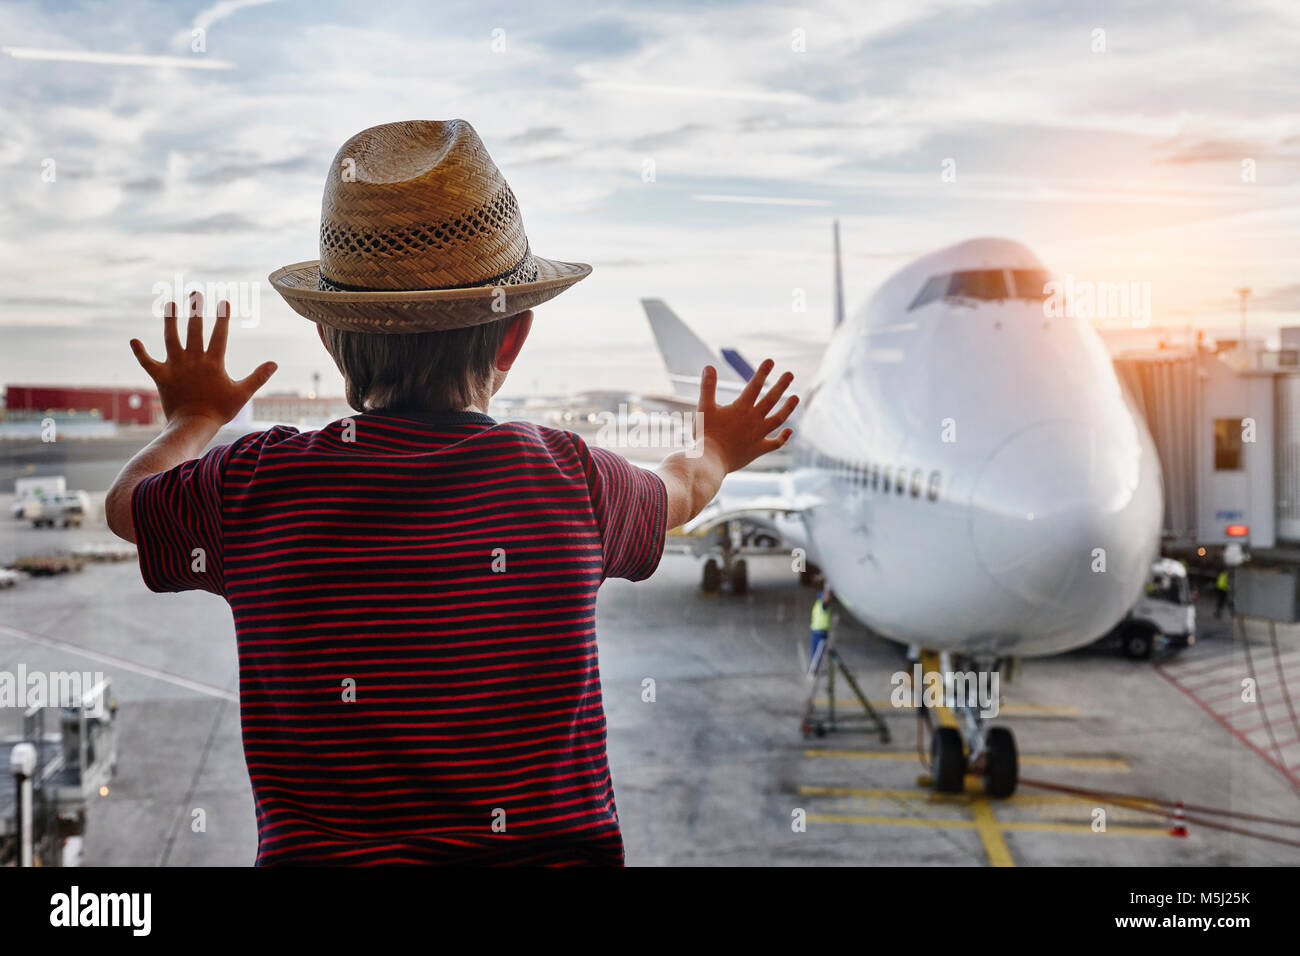 Boy wearing straw hat looking through window to airplane on the apron - Stock Image